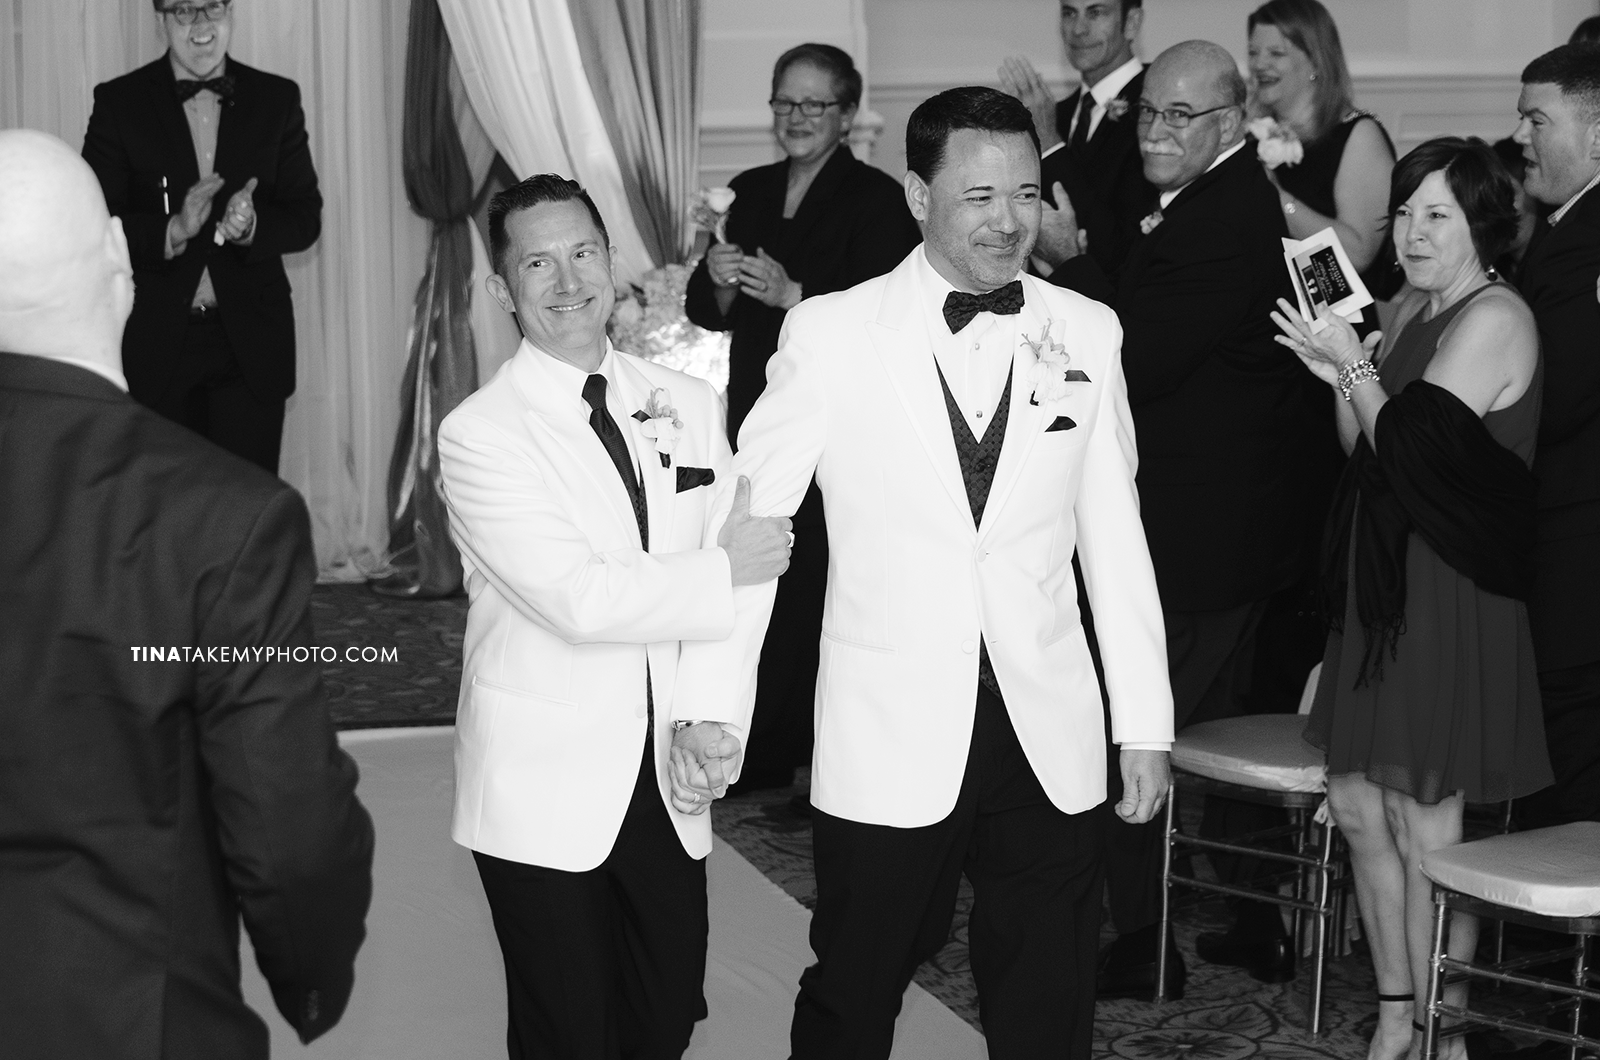 26-Washington-DC-Virginia-Gay-Same-Sex-Wedding-Men-12-13-14-Just-Married-Photographer-Aisle-Happy-Grooms